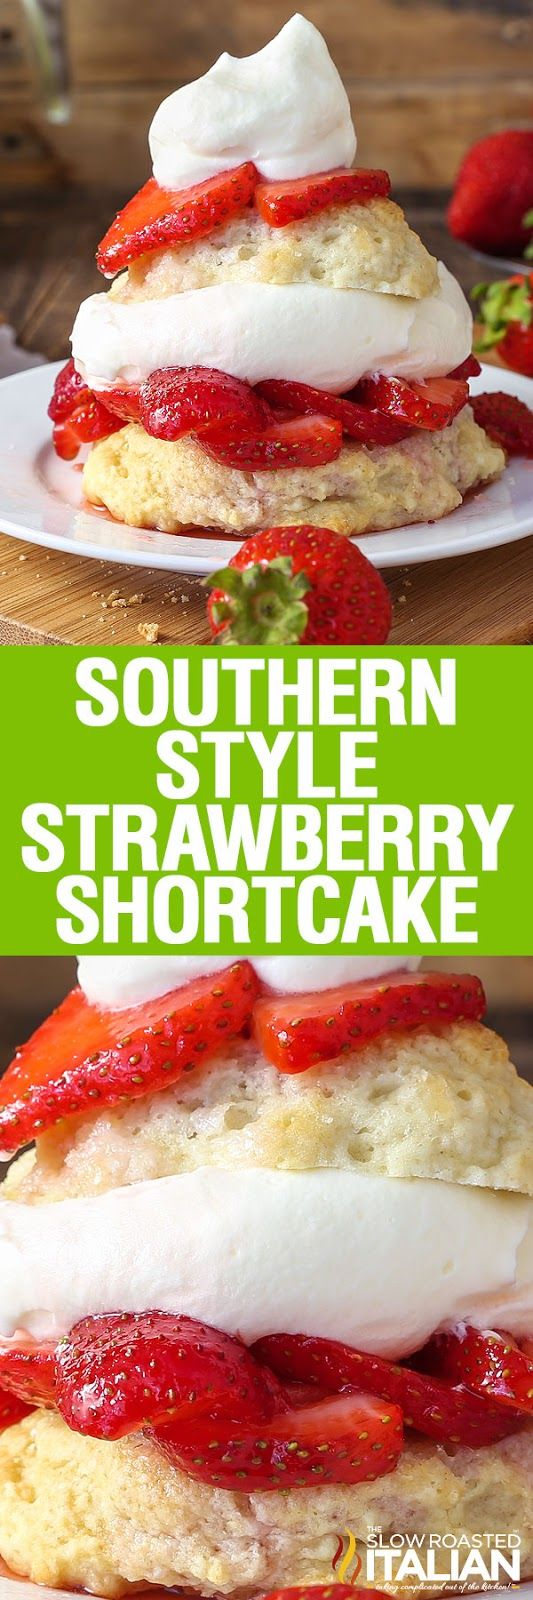 Southern-Style Strawberry Shortcake is a glorious dessert with a tender, sweet buttermilk biscuit piled with luscious, juicy strawberries and topped with light and fluffy homemade vanilla bean whipped cream. It all comes together with this easy recipe to create the perfect bite!